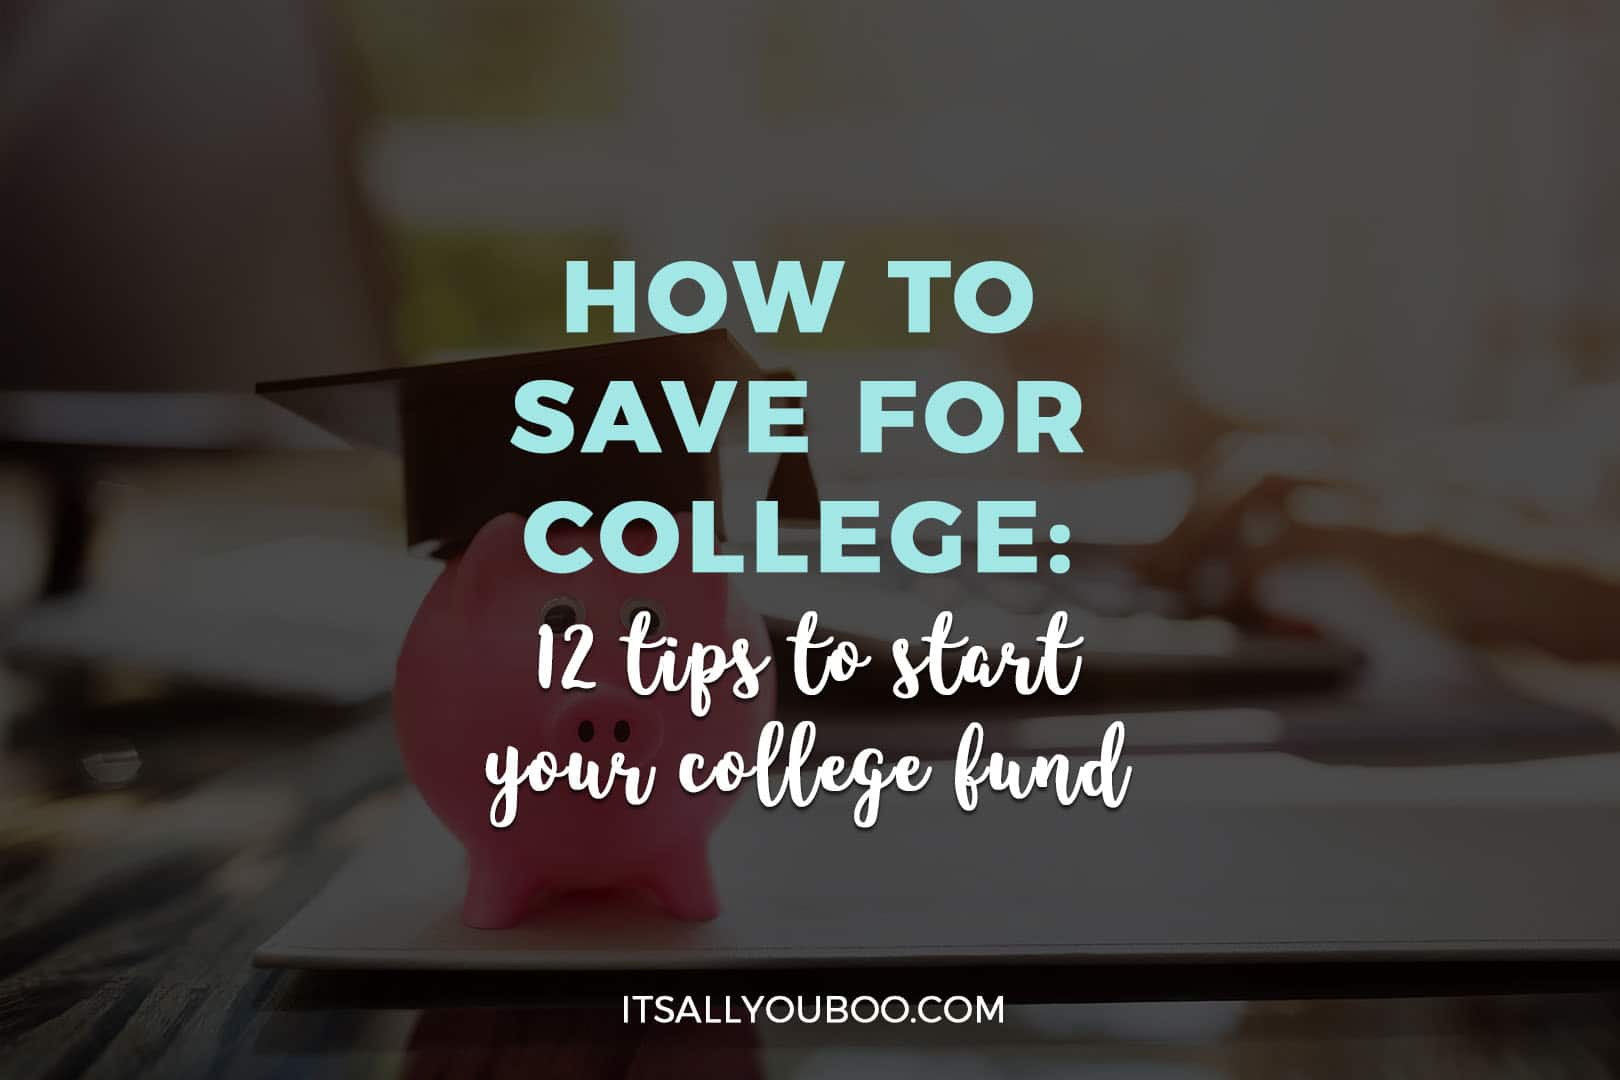 How to Save for College: 12 Tips to Start Your College Fund